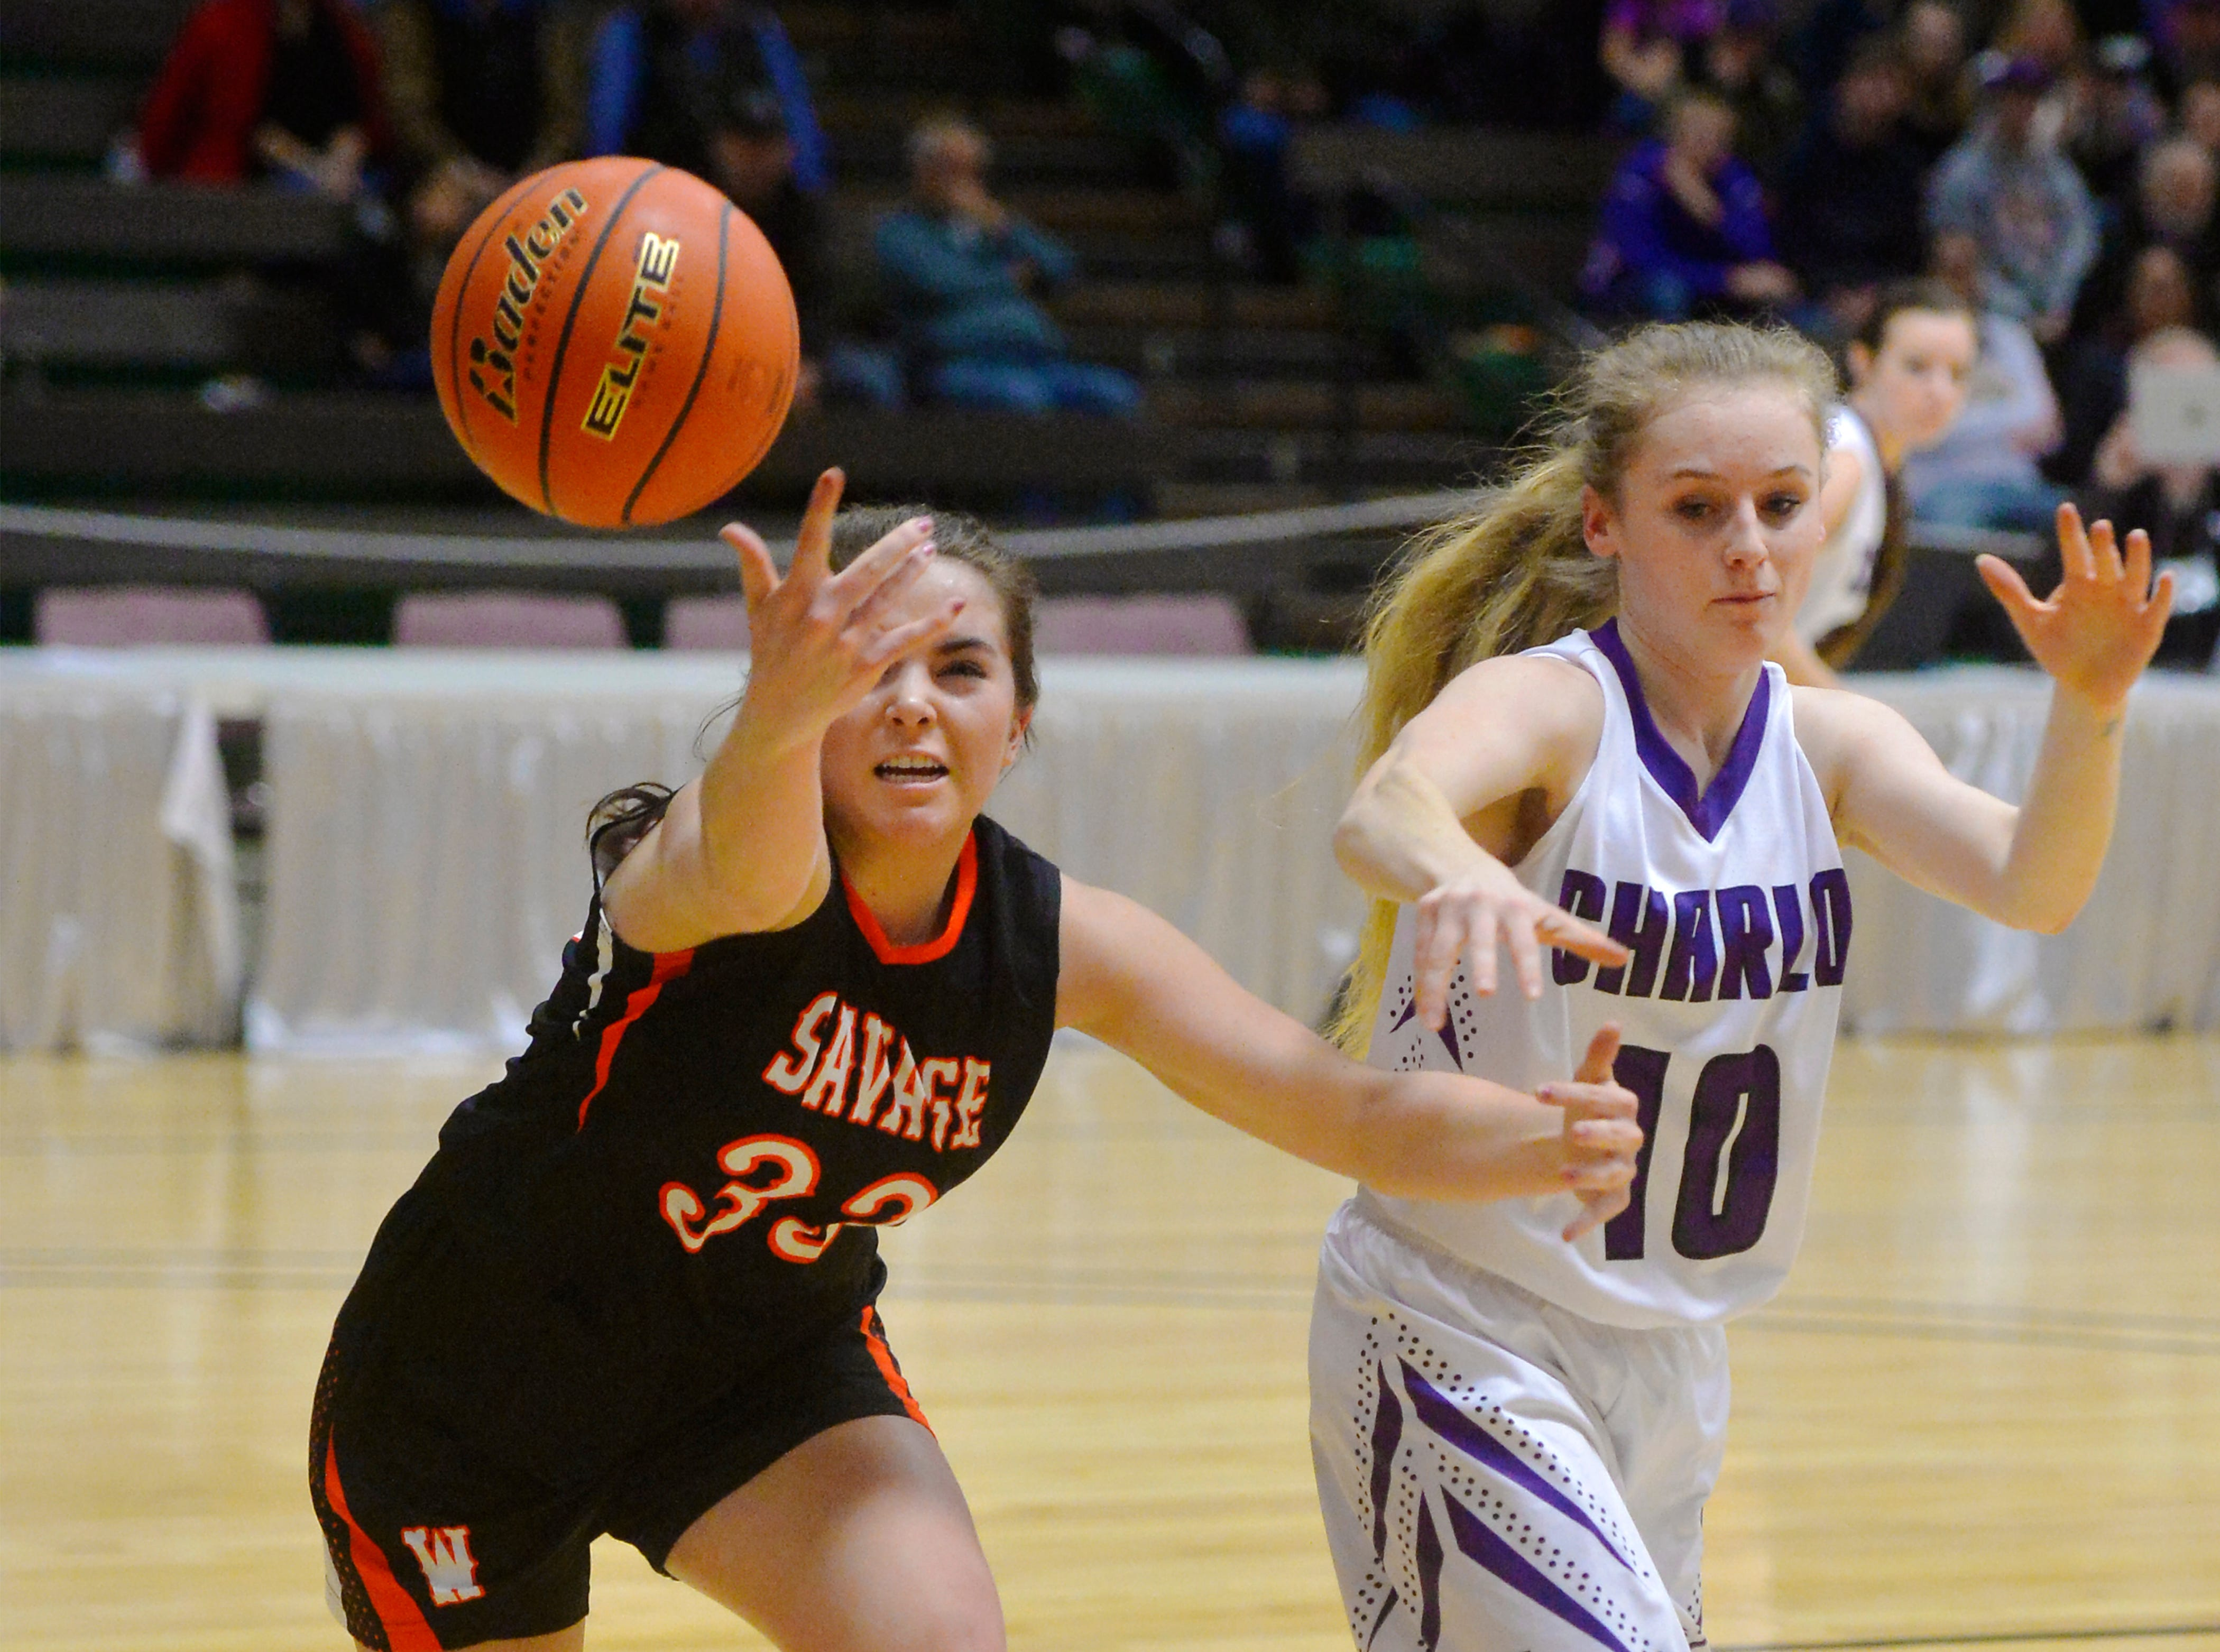 Savage's Kiana Miller attempts to steal the ball from Charlo's Kaitlin Cox during the Girls State C Basketball Tournament on Thursday in the Four Seasons Arena.